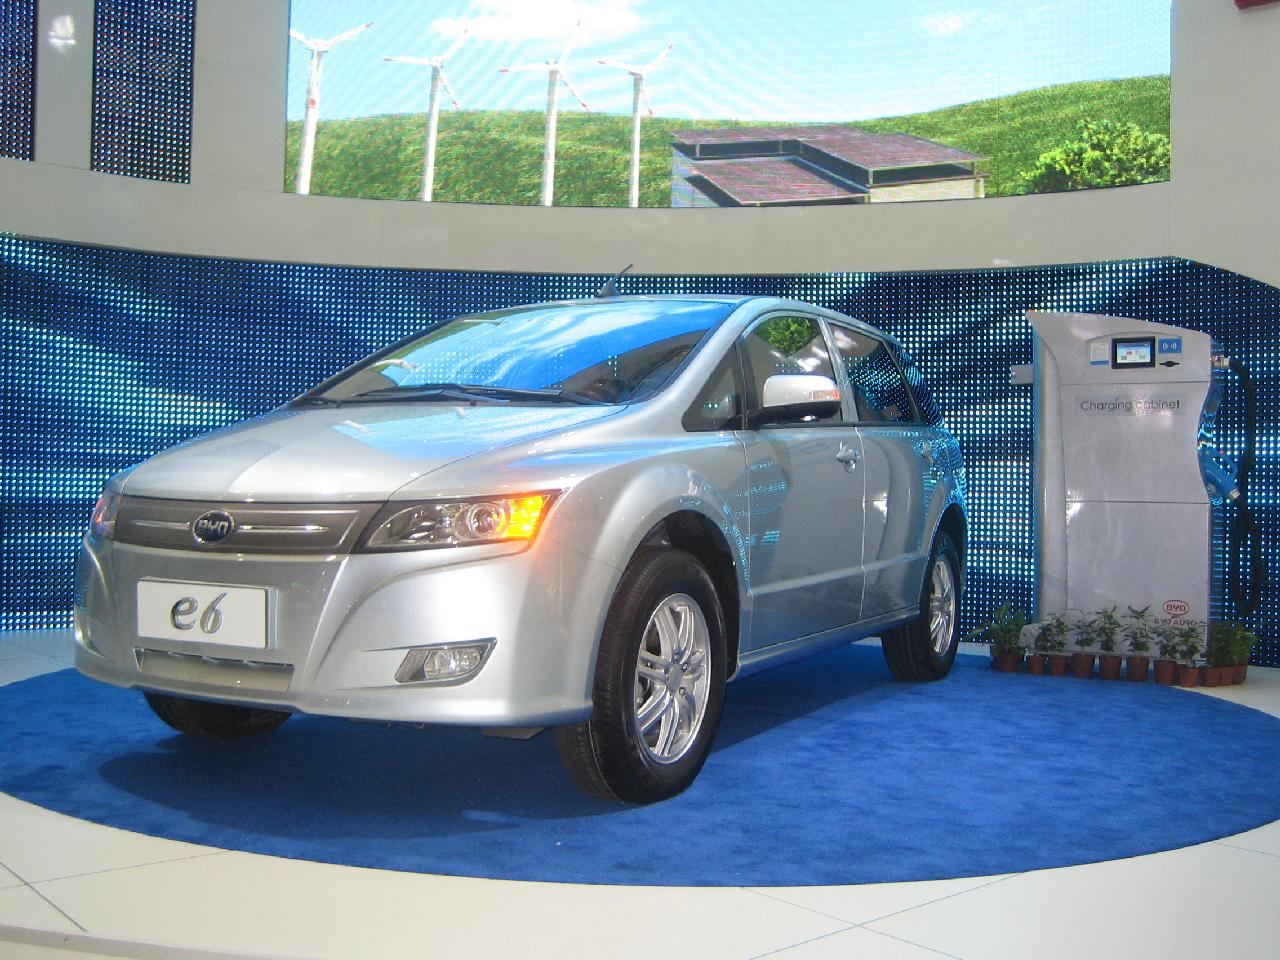 2012 Byd E6 Electric Crossover To Cost 35 000 200 Mile Range